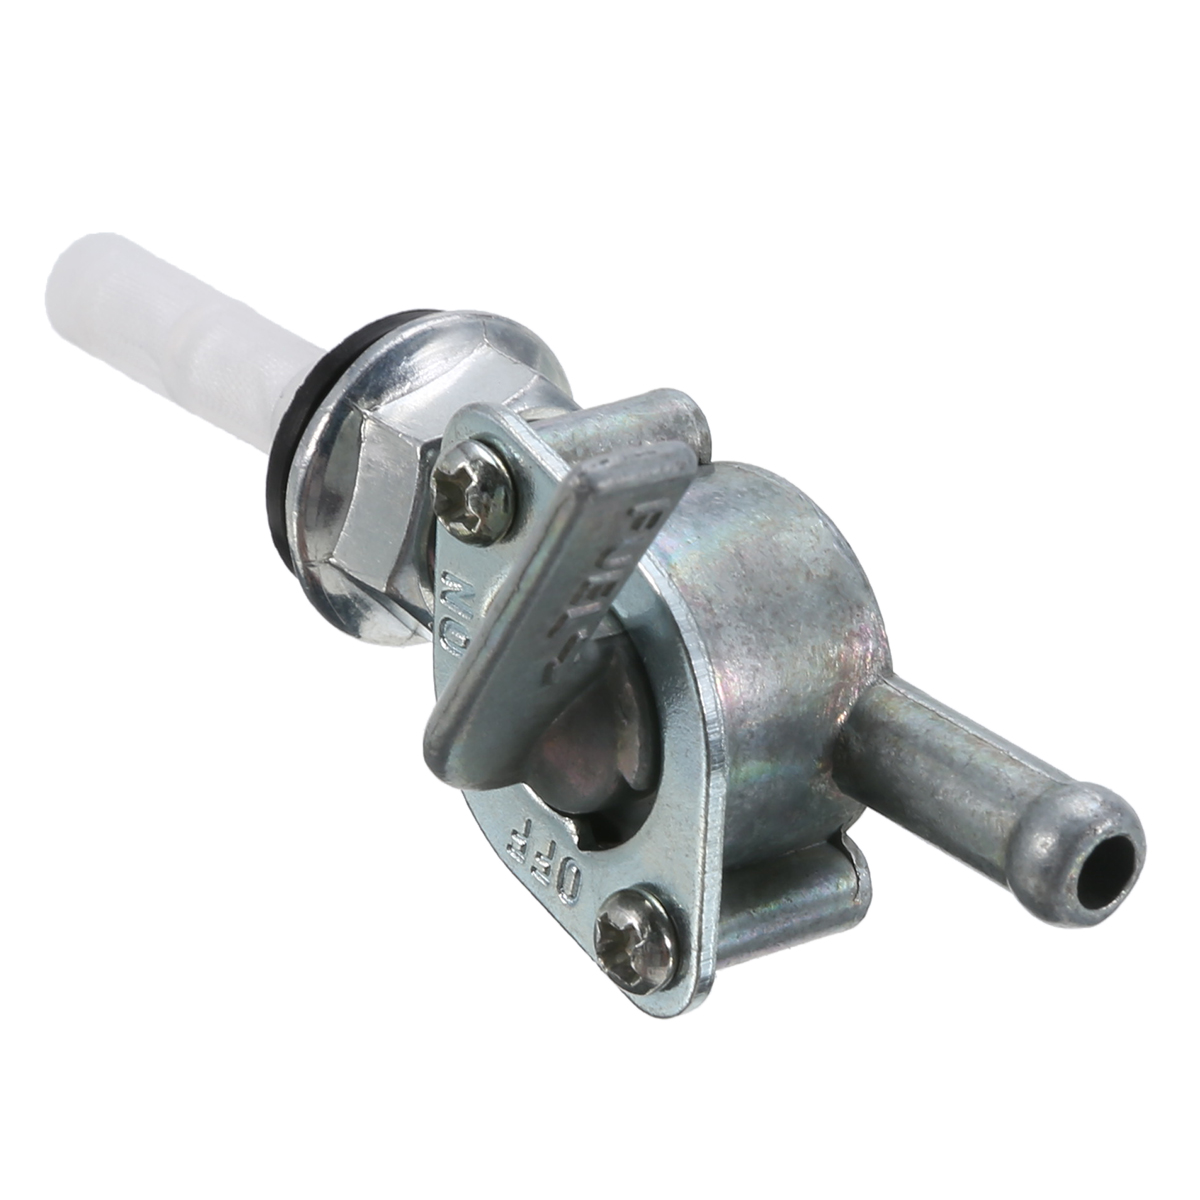 For Motorcycle ATV Dirtbike 1pc Fuel Tank Switch Valve Petcock Faucet 2 Stroke Motorized Bicycle 49cc-80cc Mayitr